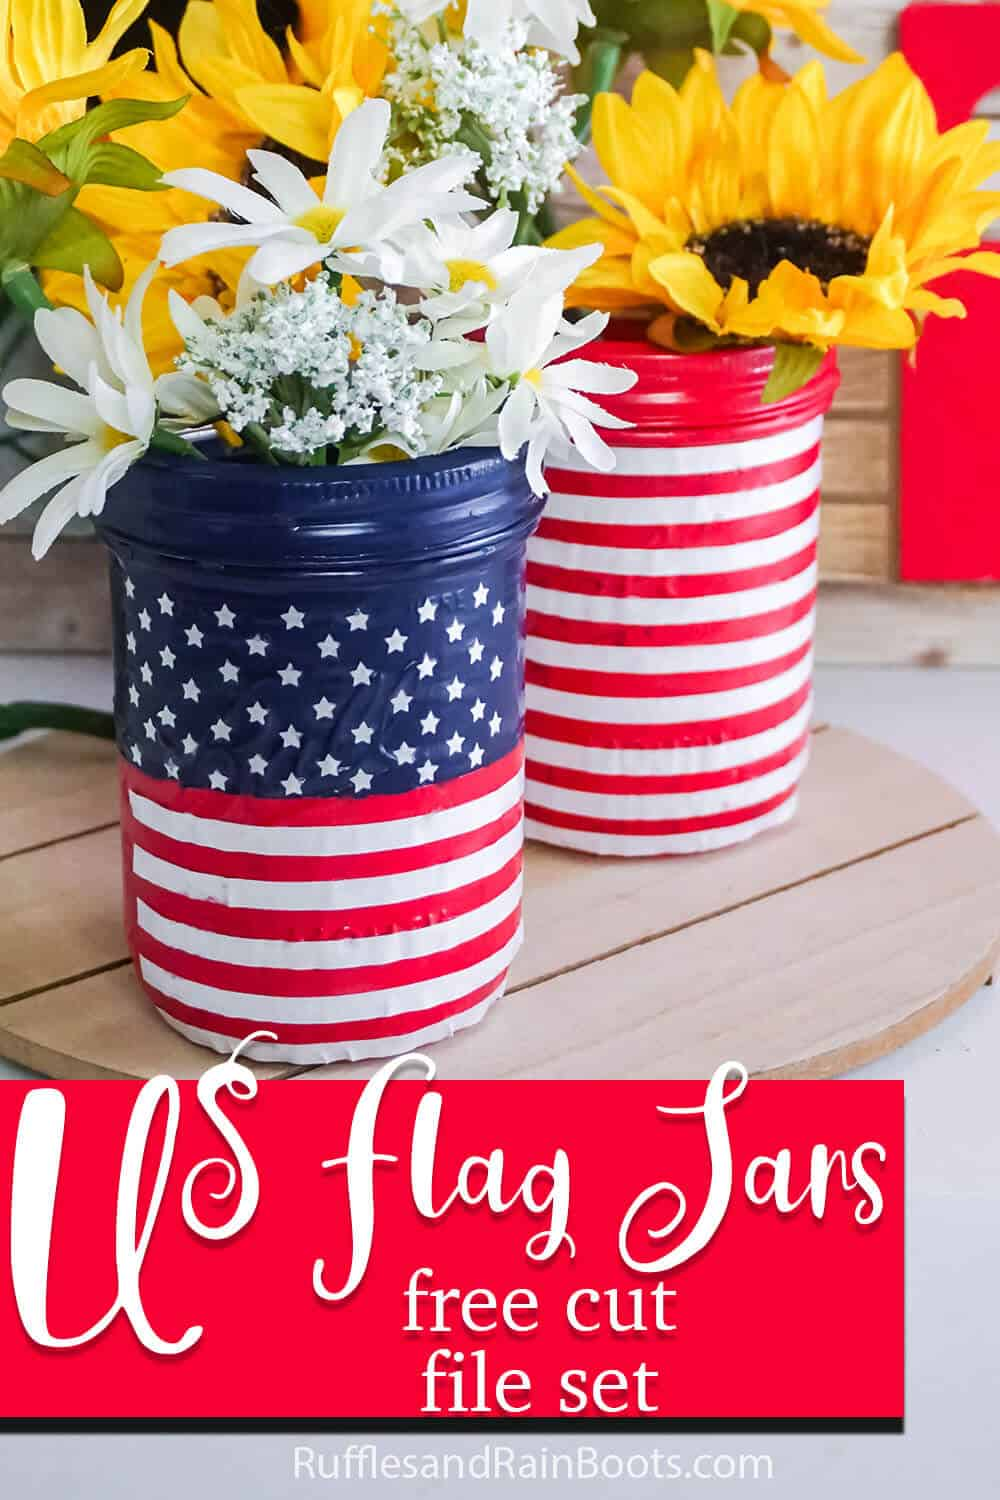 farmhouse decor mason jars painted as a us flag with text which reads use flag jars free cut file set